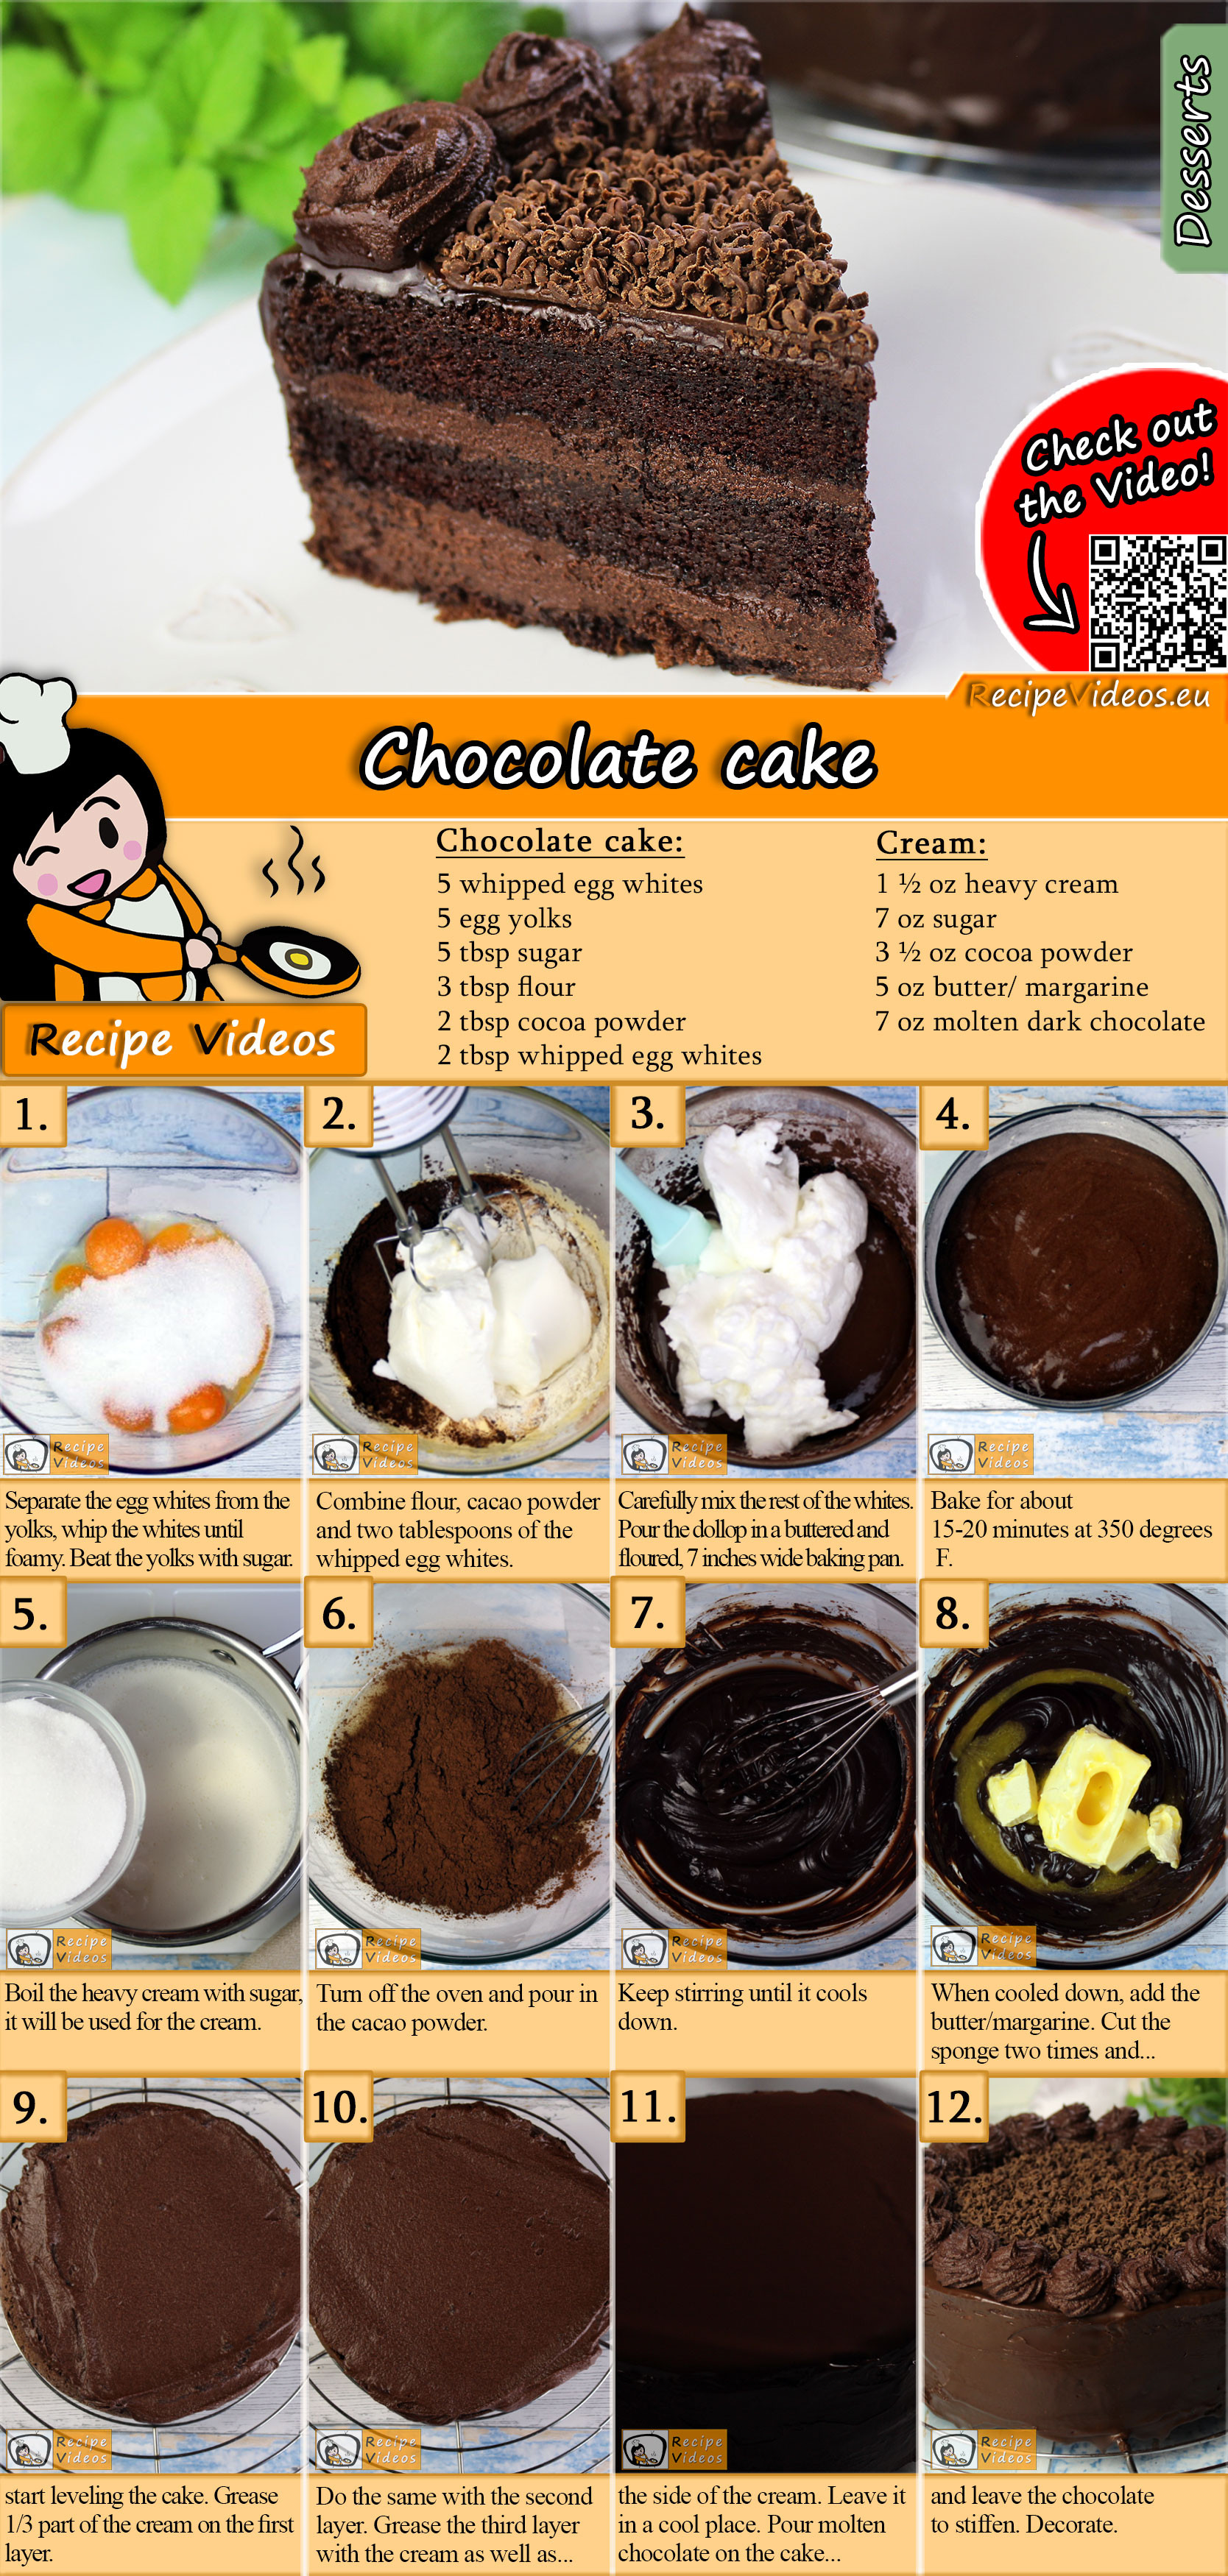 Chocolate cake recipe with video